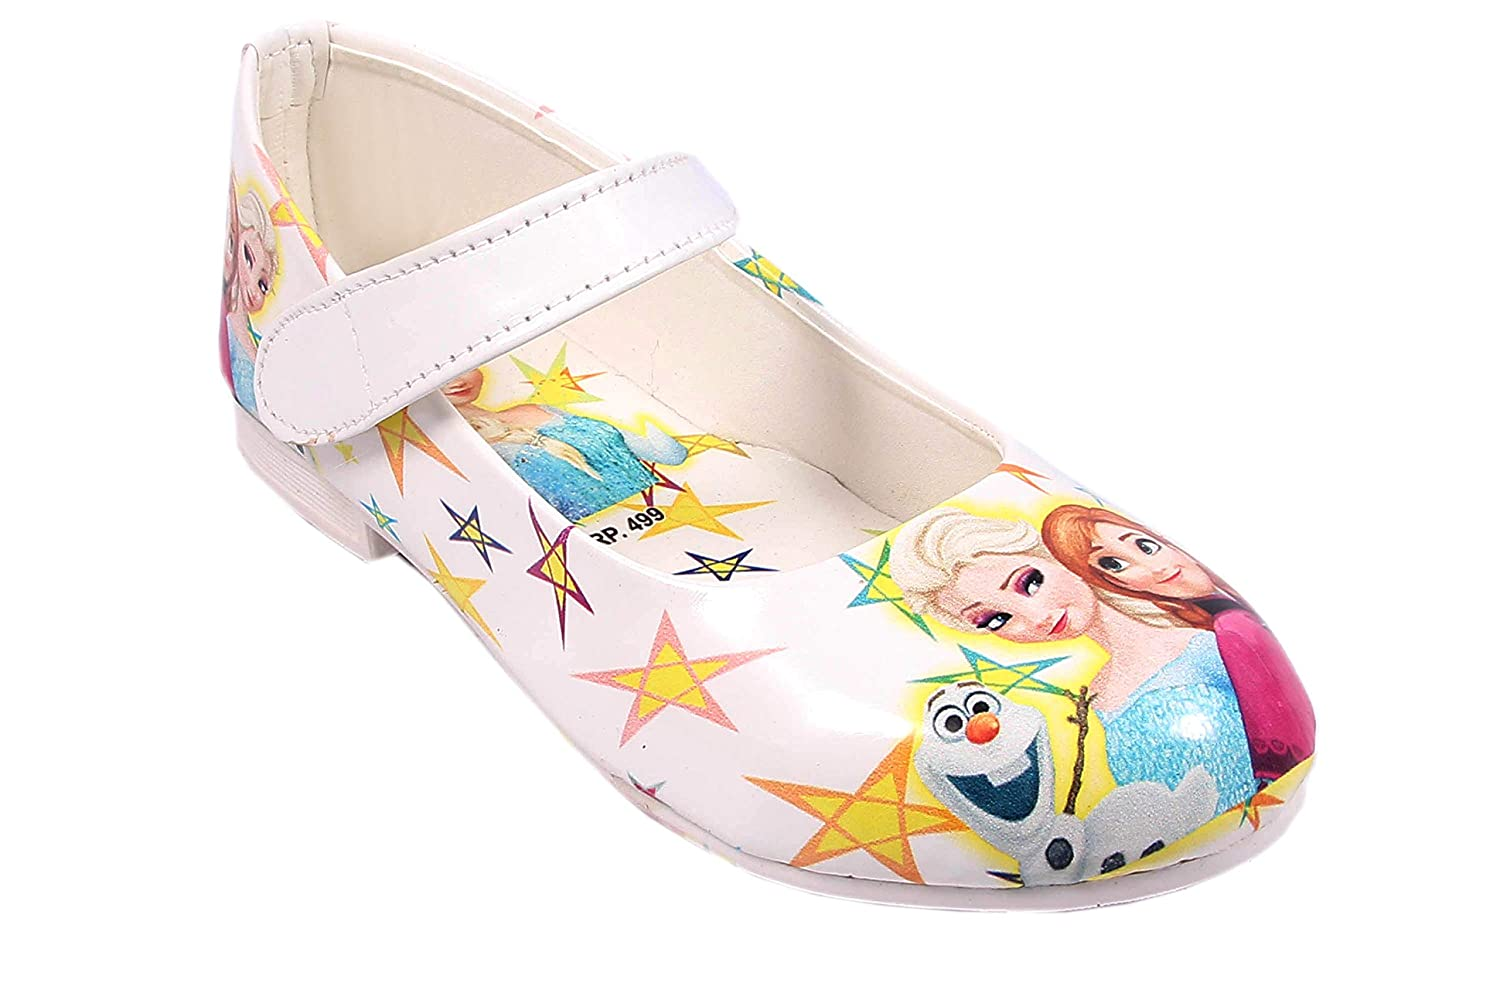 Rgk's Barbie Sisters Long Shoes Mary